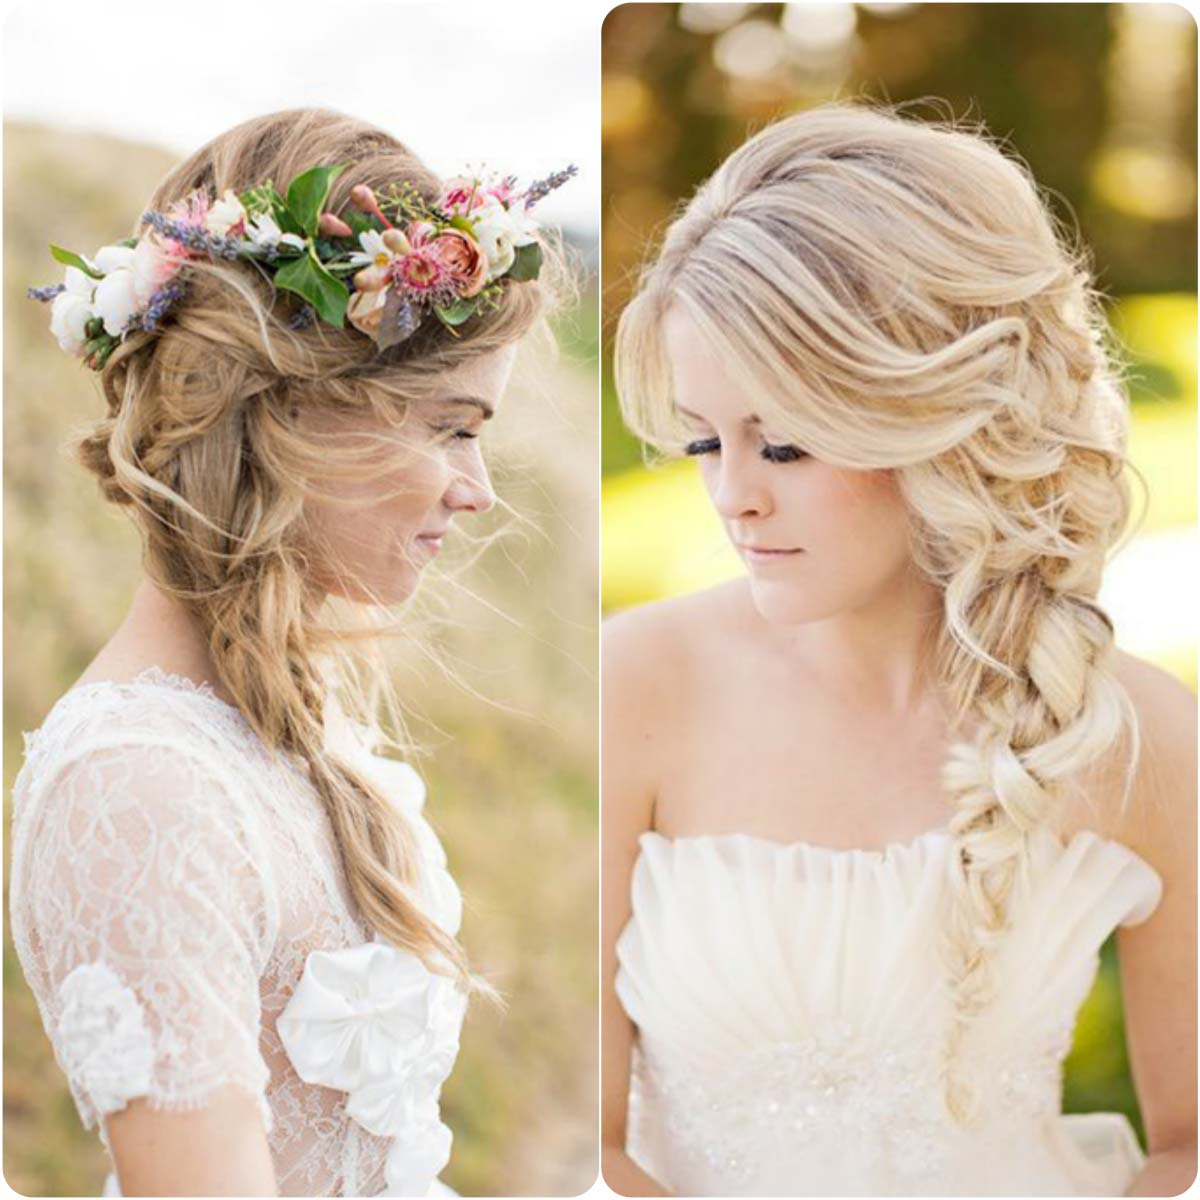 Braided Wedding Hair: 20 Braided Hairstyles For Wedding Brides 2016